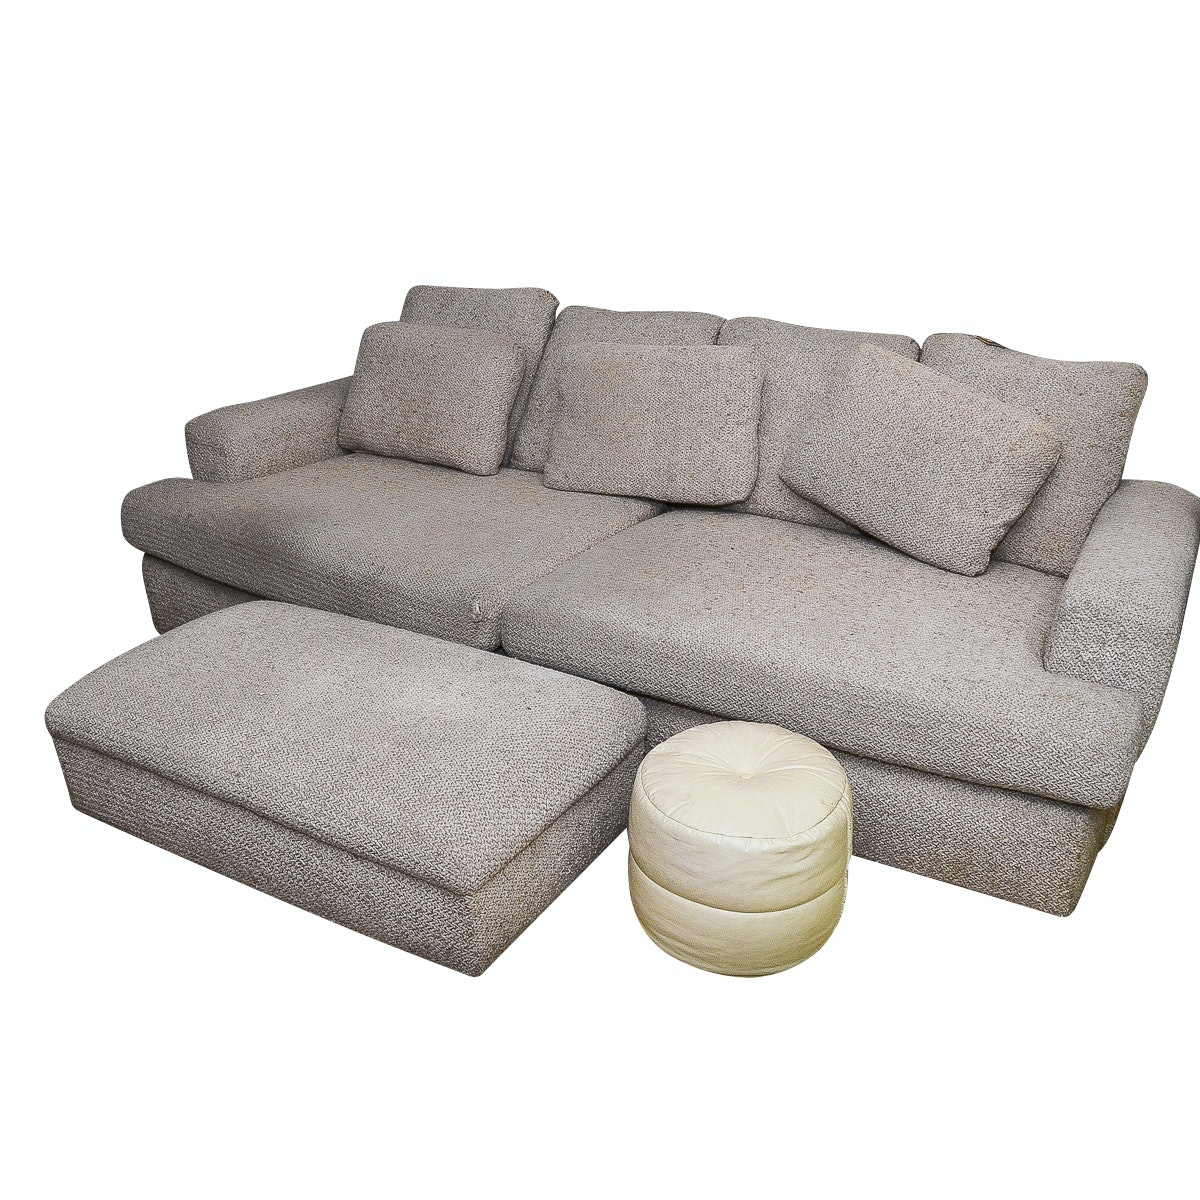 Oversized Sofa with Ottoman by Stanton Industries